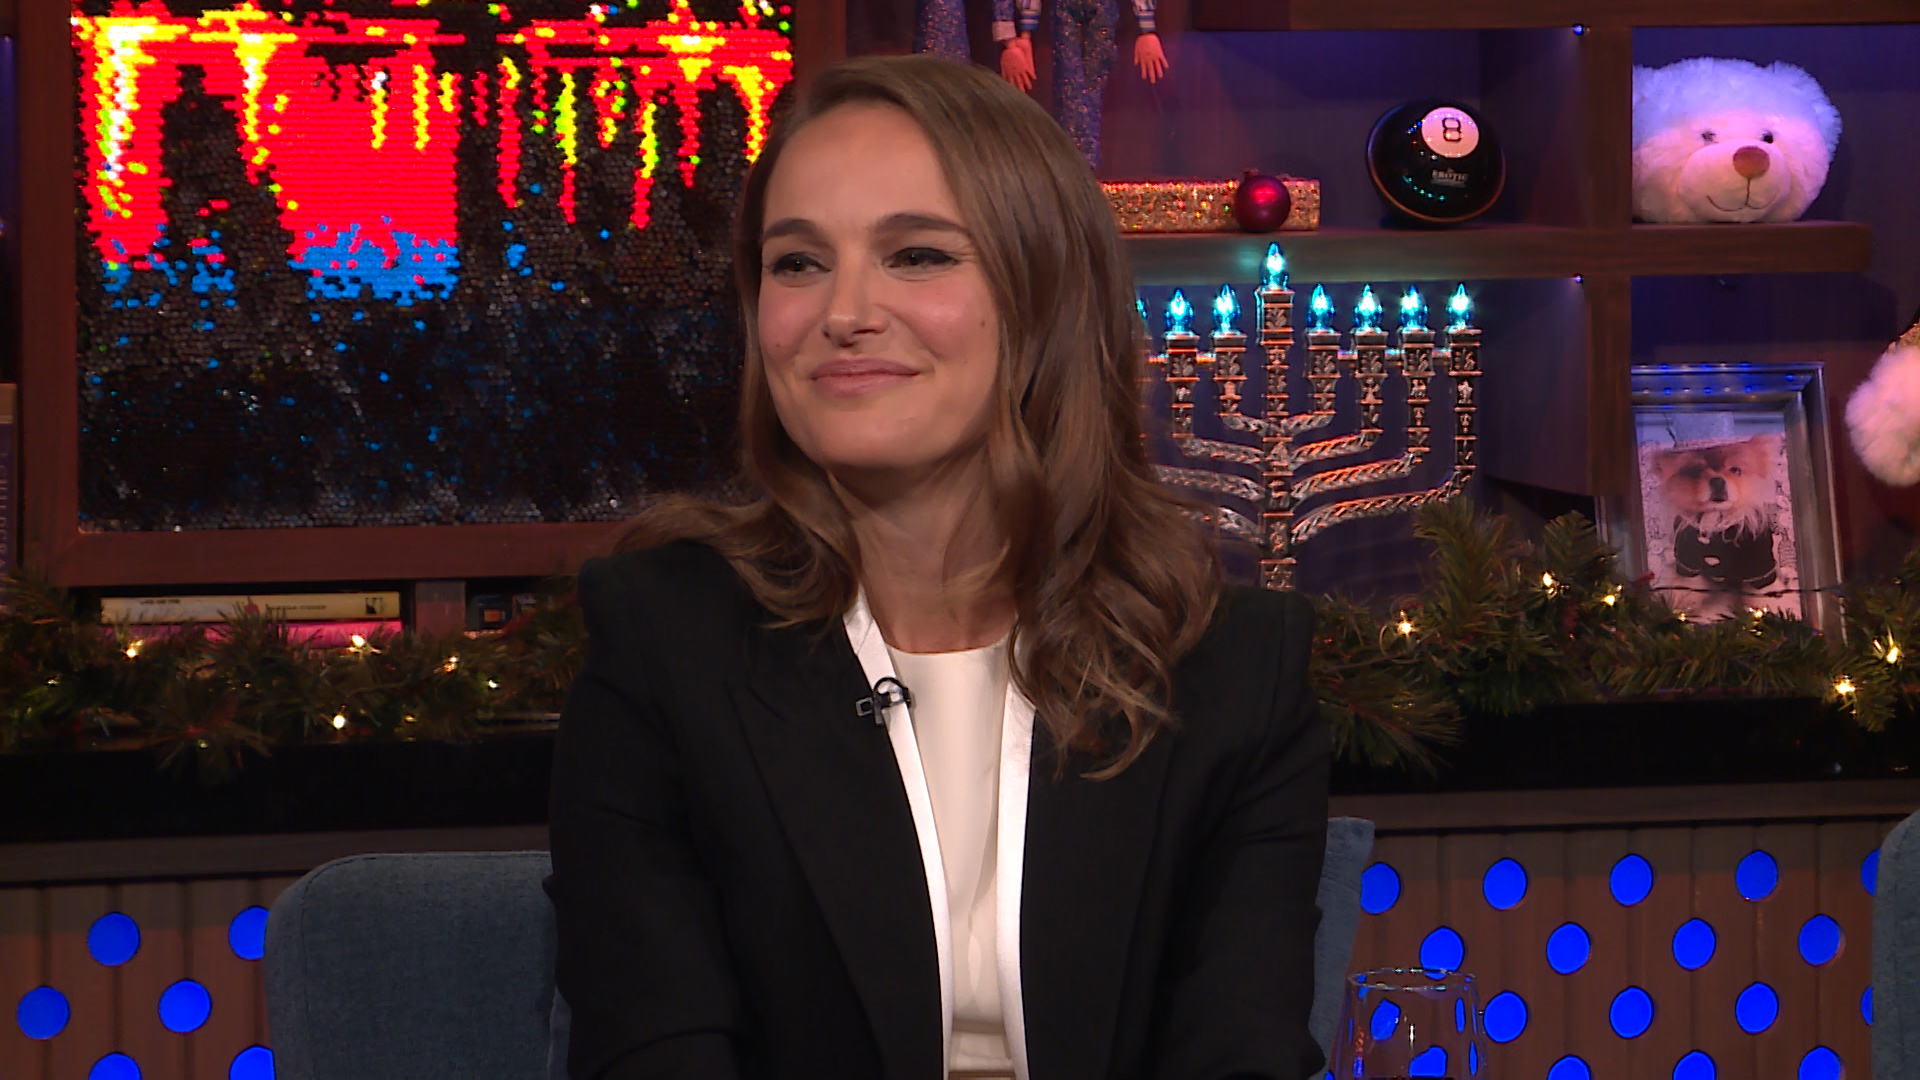 Natalie Portman on Attending Harvard with Mark Zuckerberg